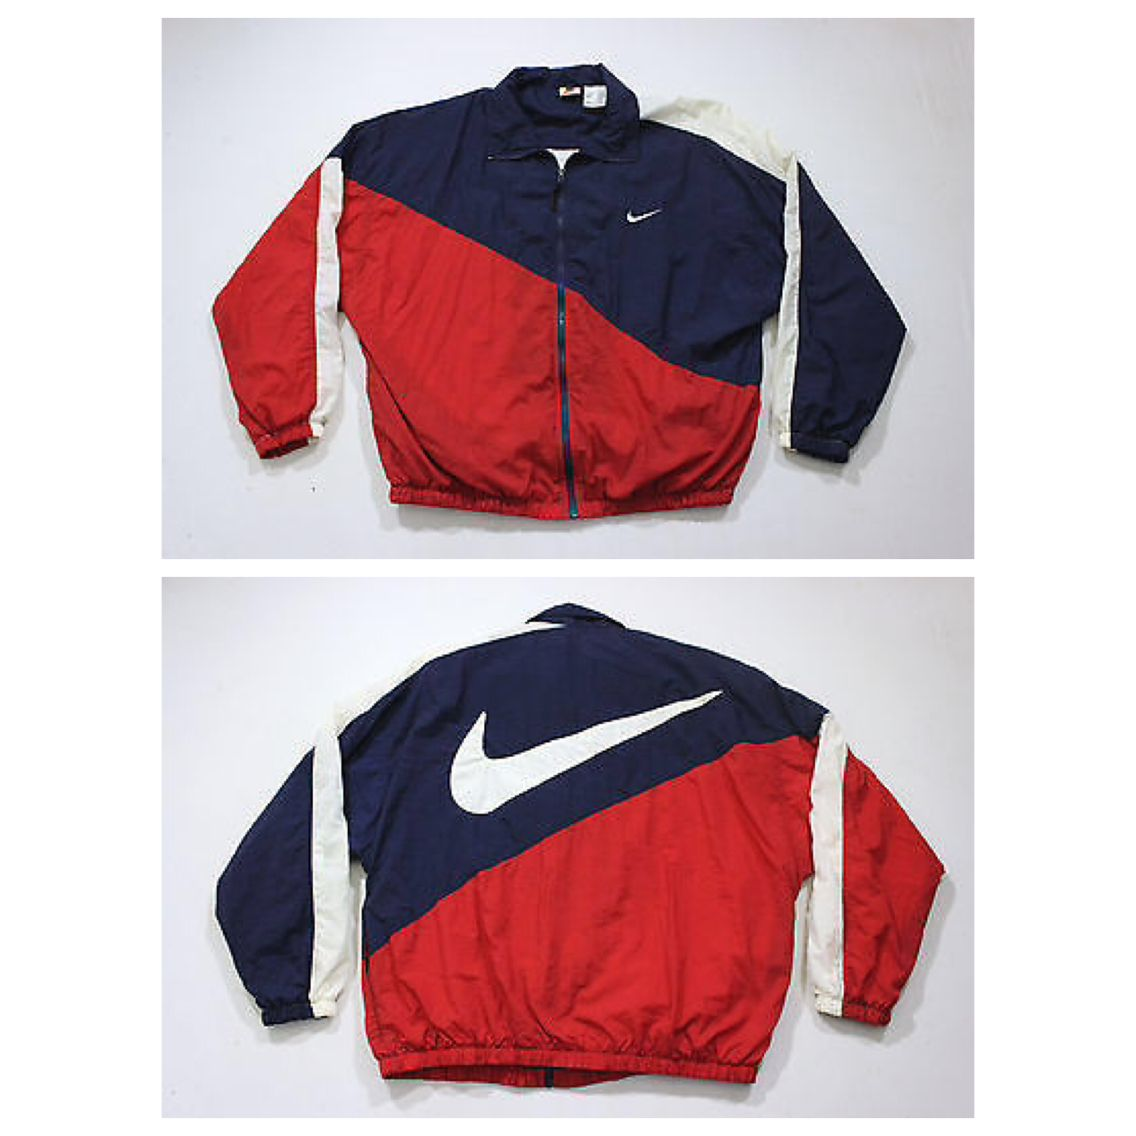 c56b88397ca1 Nike Colorblock Red White Blue USA Windbreaker OG Jacket.  nike   nikesportswear  streetwear  jacket  vintage